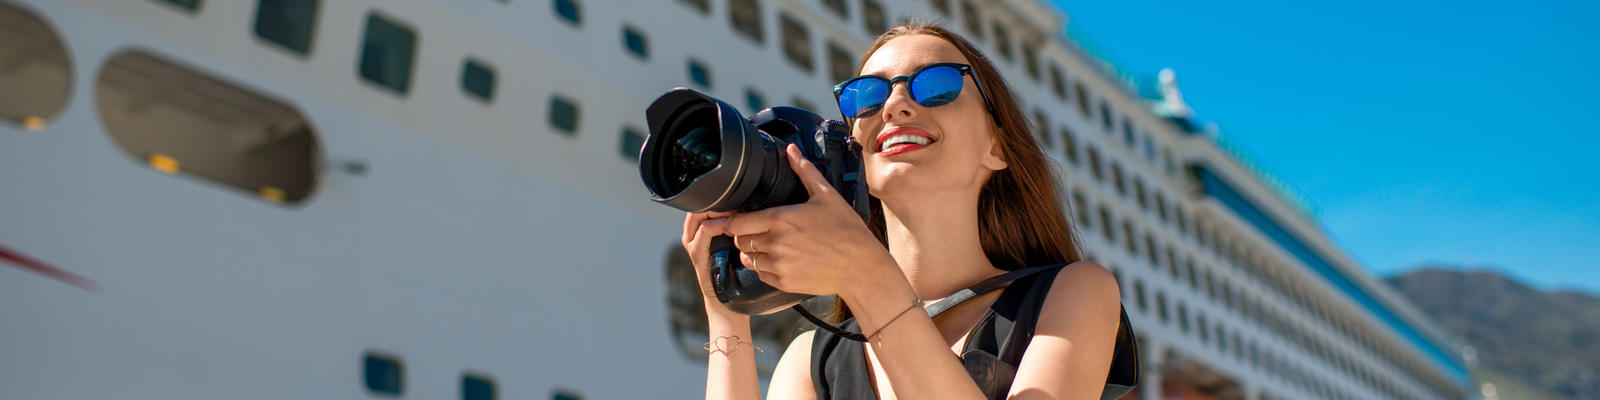 9 Tips for Taking Better Pictures on Your Next Cruise (Photo: RossHelen/Shutterstock.com)